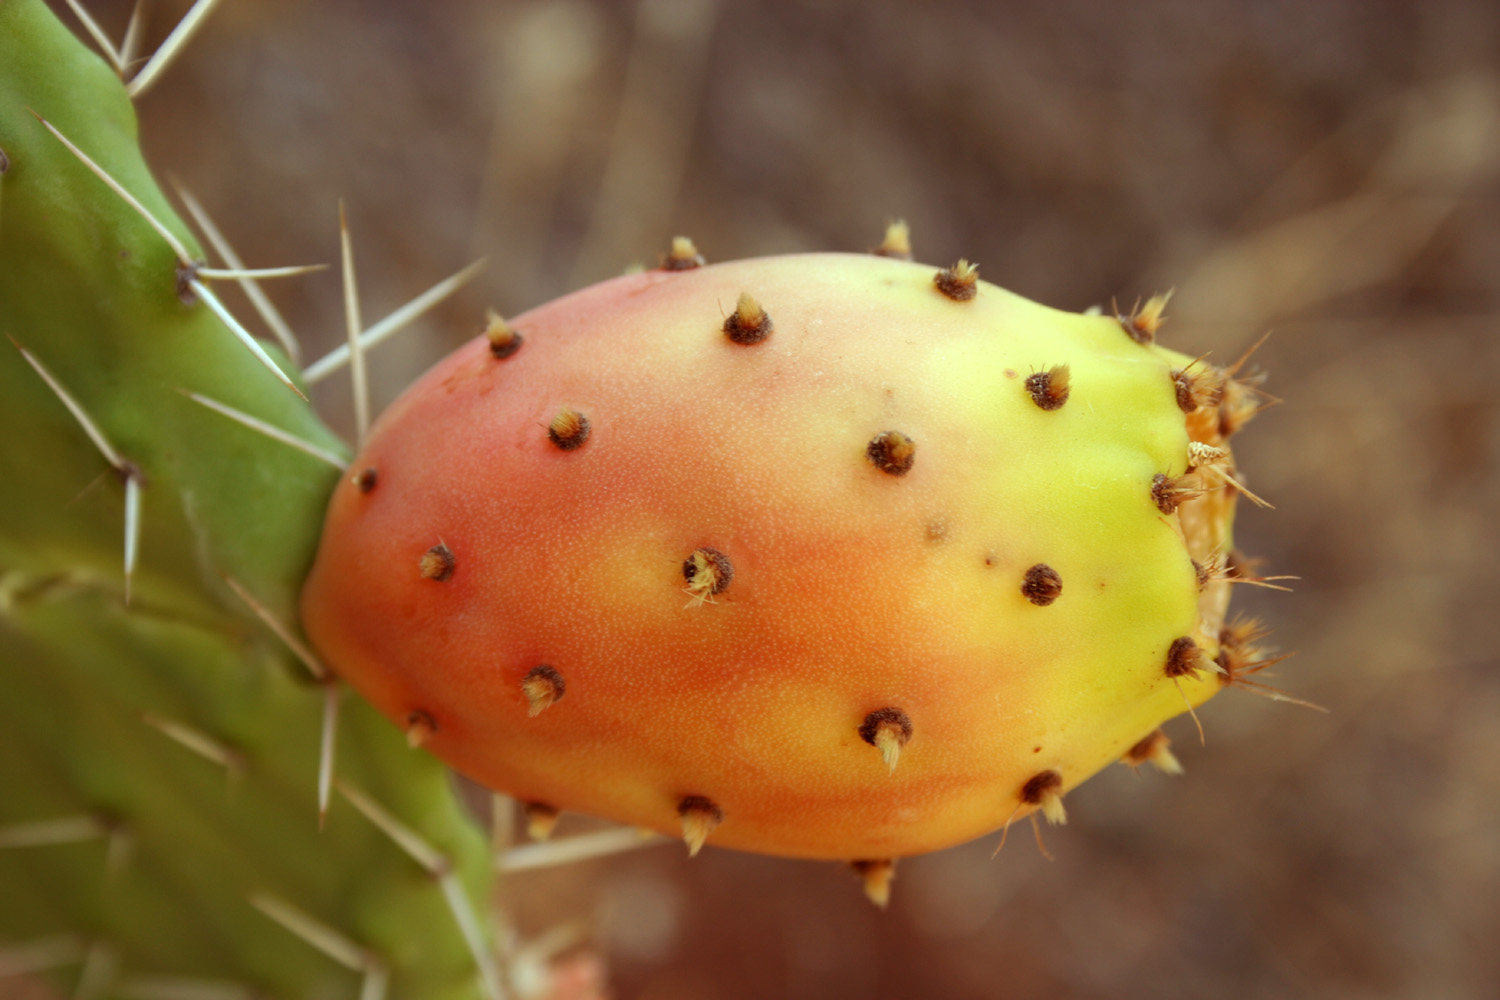 http://upload.wikimedia.org/wikipedia/commons/a/a1/Opuntia_ficus-indica_fruit9.jpg